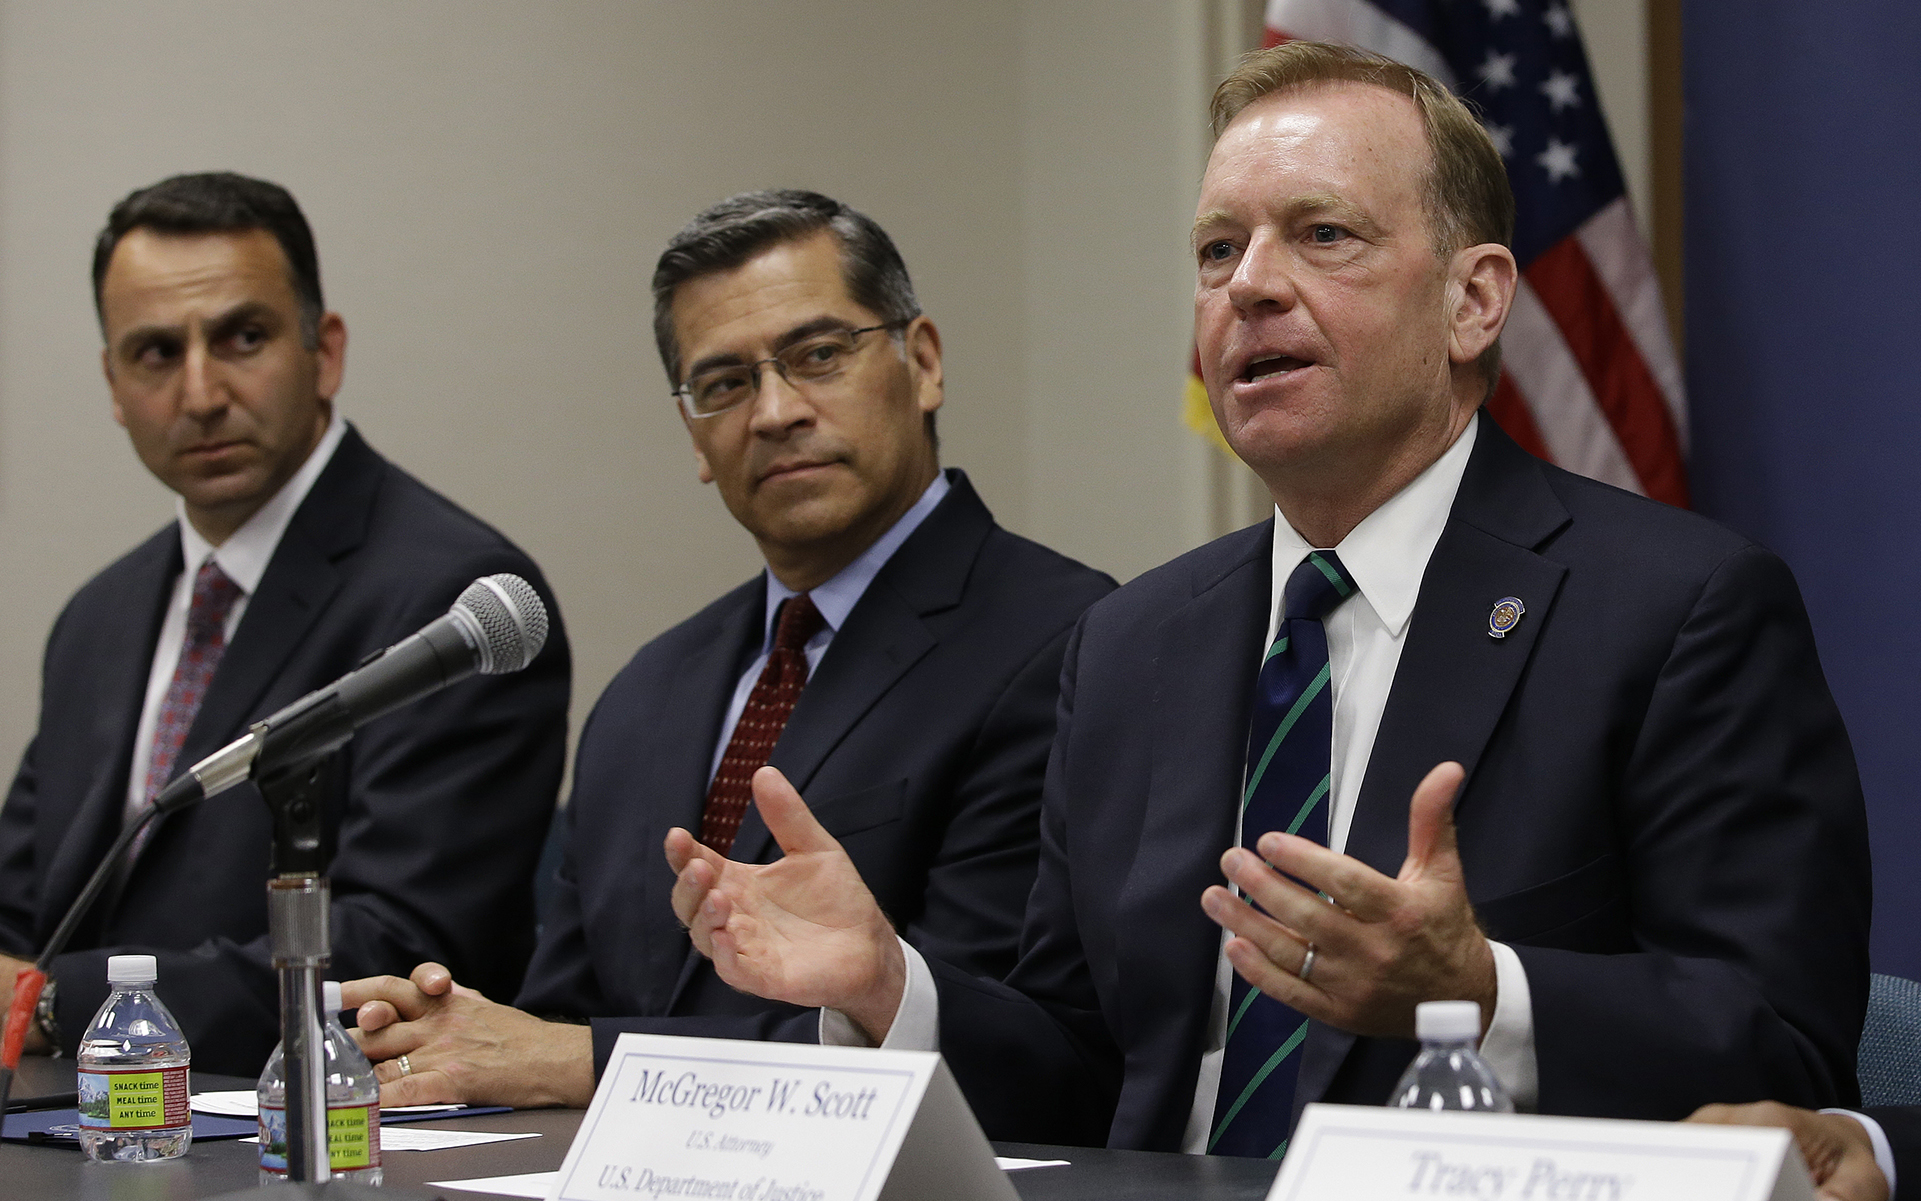 McGregor Scott, right, the United States Attorney for the Eastern District of California, flanked by California Attorney General Xavier Becerra, center, discusses an increase in the use of a banned pesticide at illegal marijuana farms hidden on public lands Tuesday, May 29, 2018, in Sacramento, Calif. Research by Mourad Gabriel, left, the executive director and senior ecologist at Integral Ecology Research Center, and his colleagues found the highly toxic pesticide Carbofuran, which can't legally be used in the Unites States, at 72 percent of grow sites last year, up 15 percent from 2012. (AP Photo/Rich Pedroncelli)